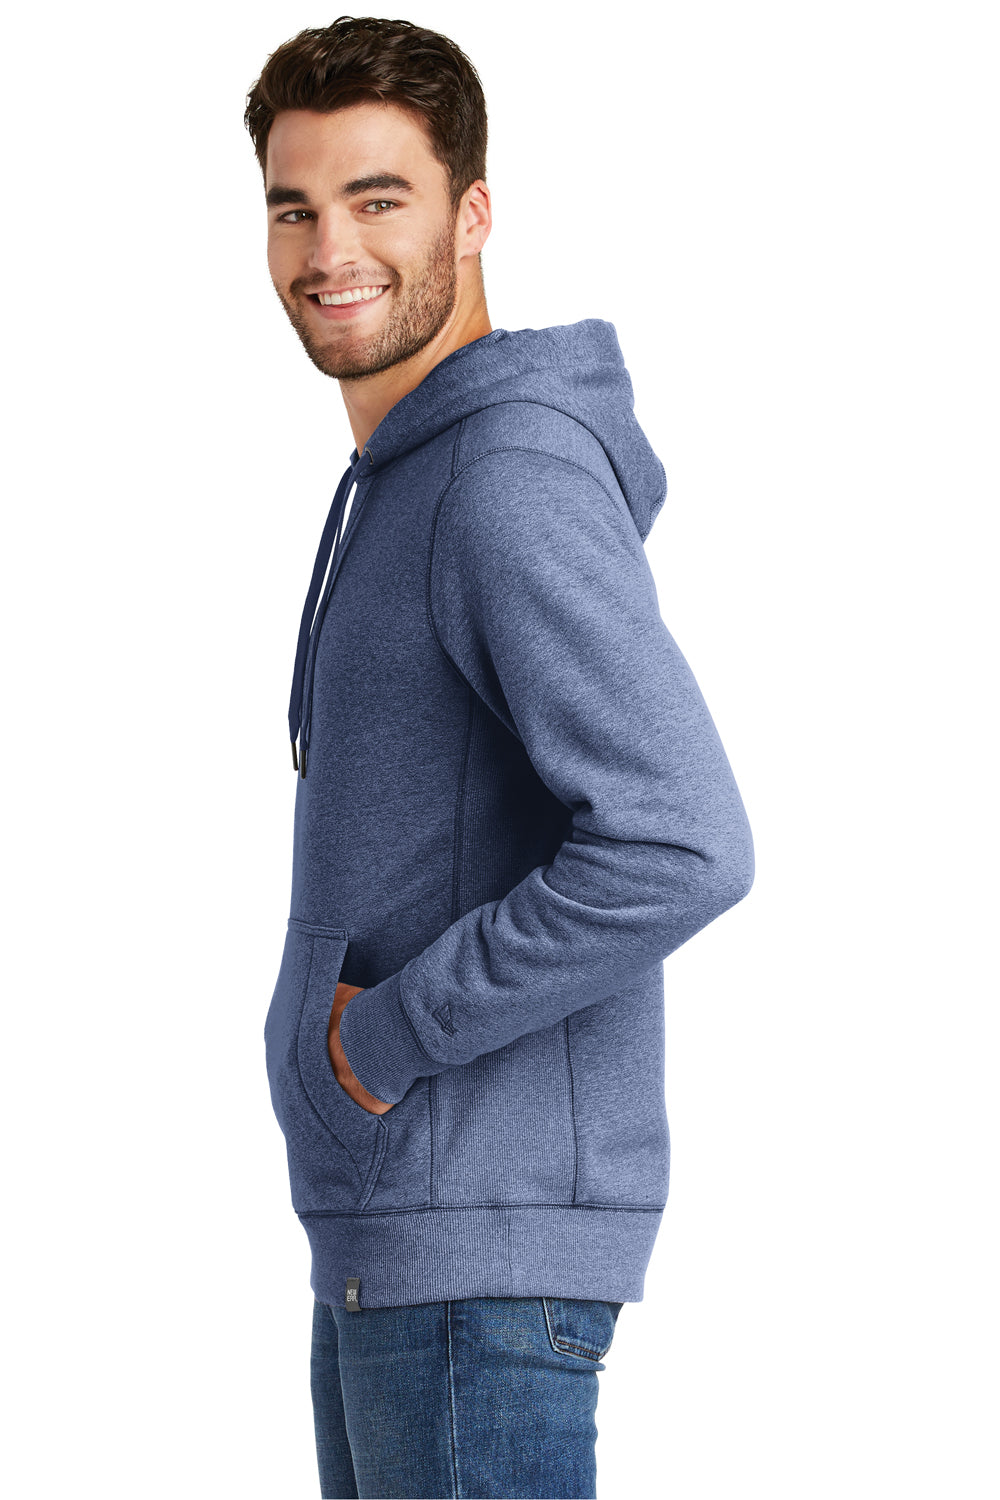 New Era NEA500 Mens Sueded French Terry Hooded Sweatshirt Hoodie Dark Royal Blue Twist Side